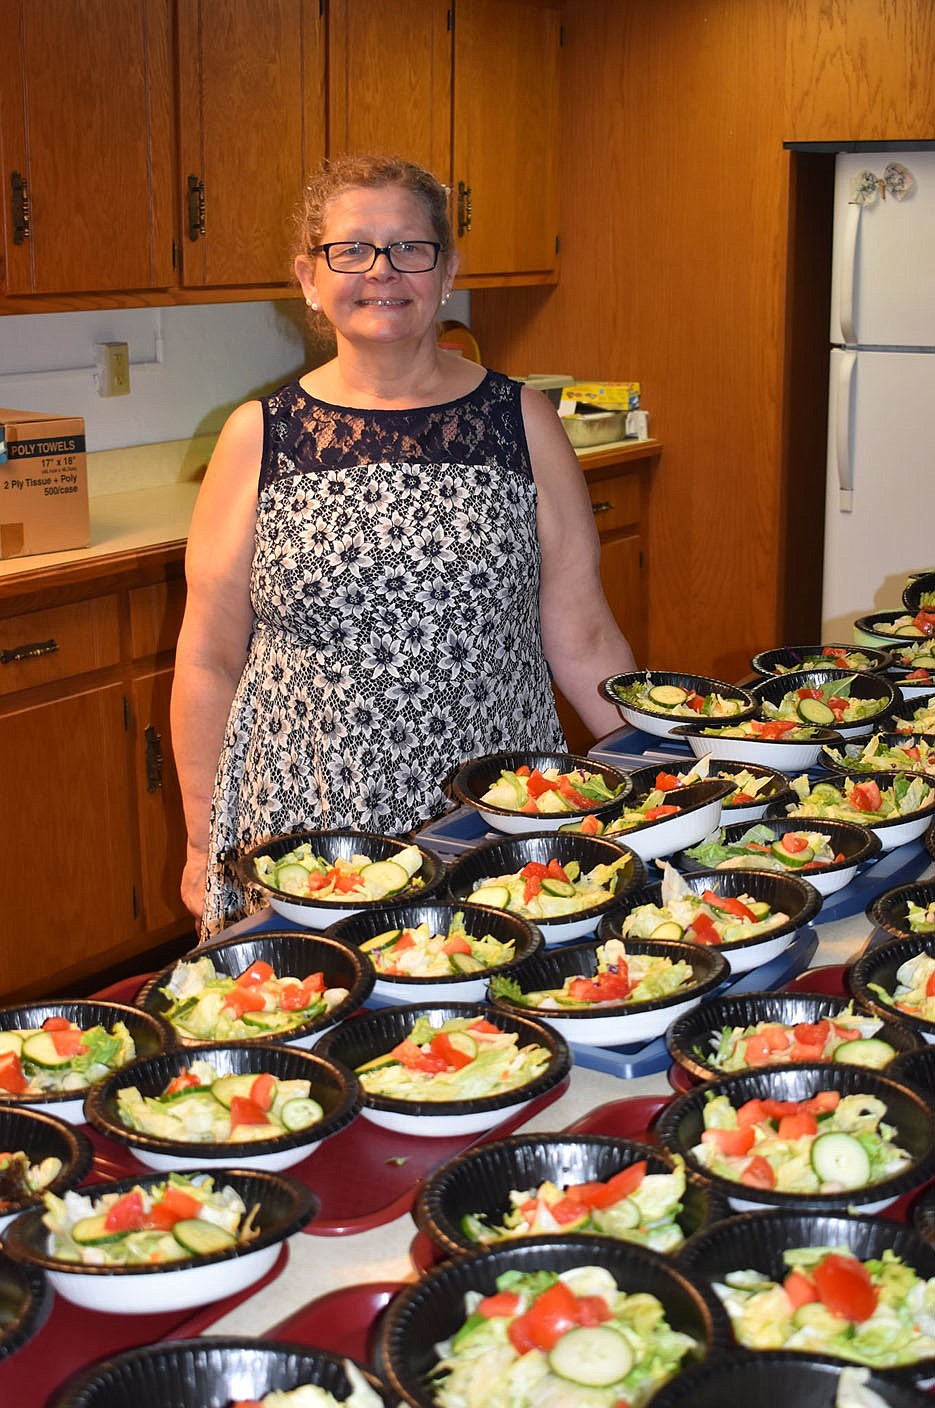 PHOTO BY DALANA FULLER. Photo of PCC volunteer Lynda Dyki. Dyki prepared the salads for the reunion lunch.